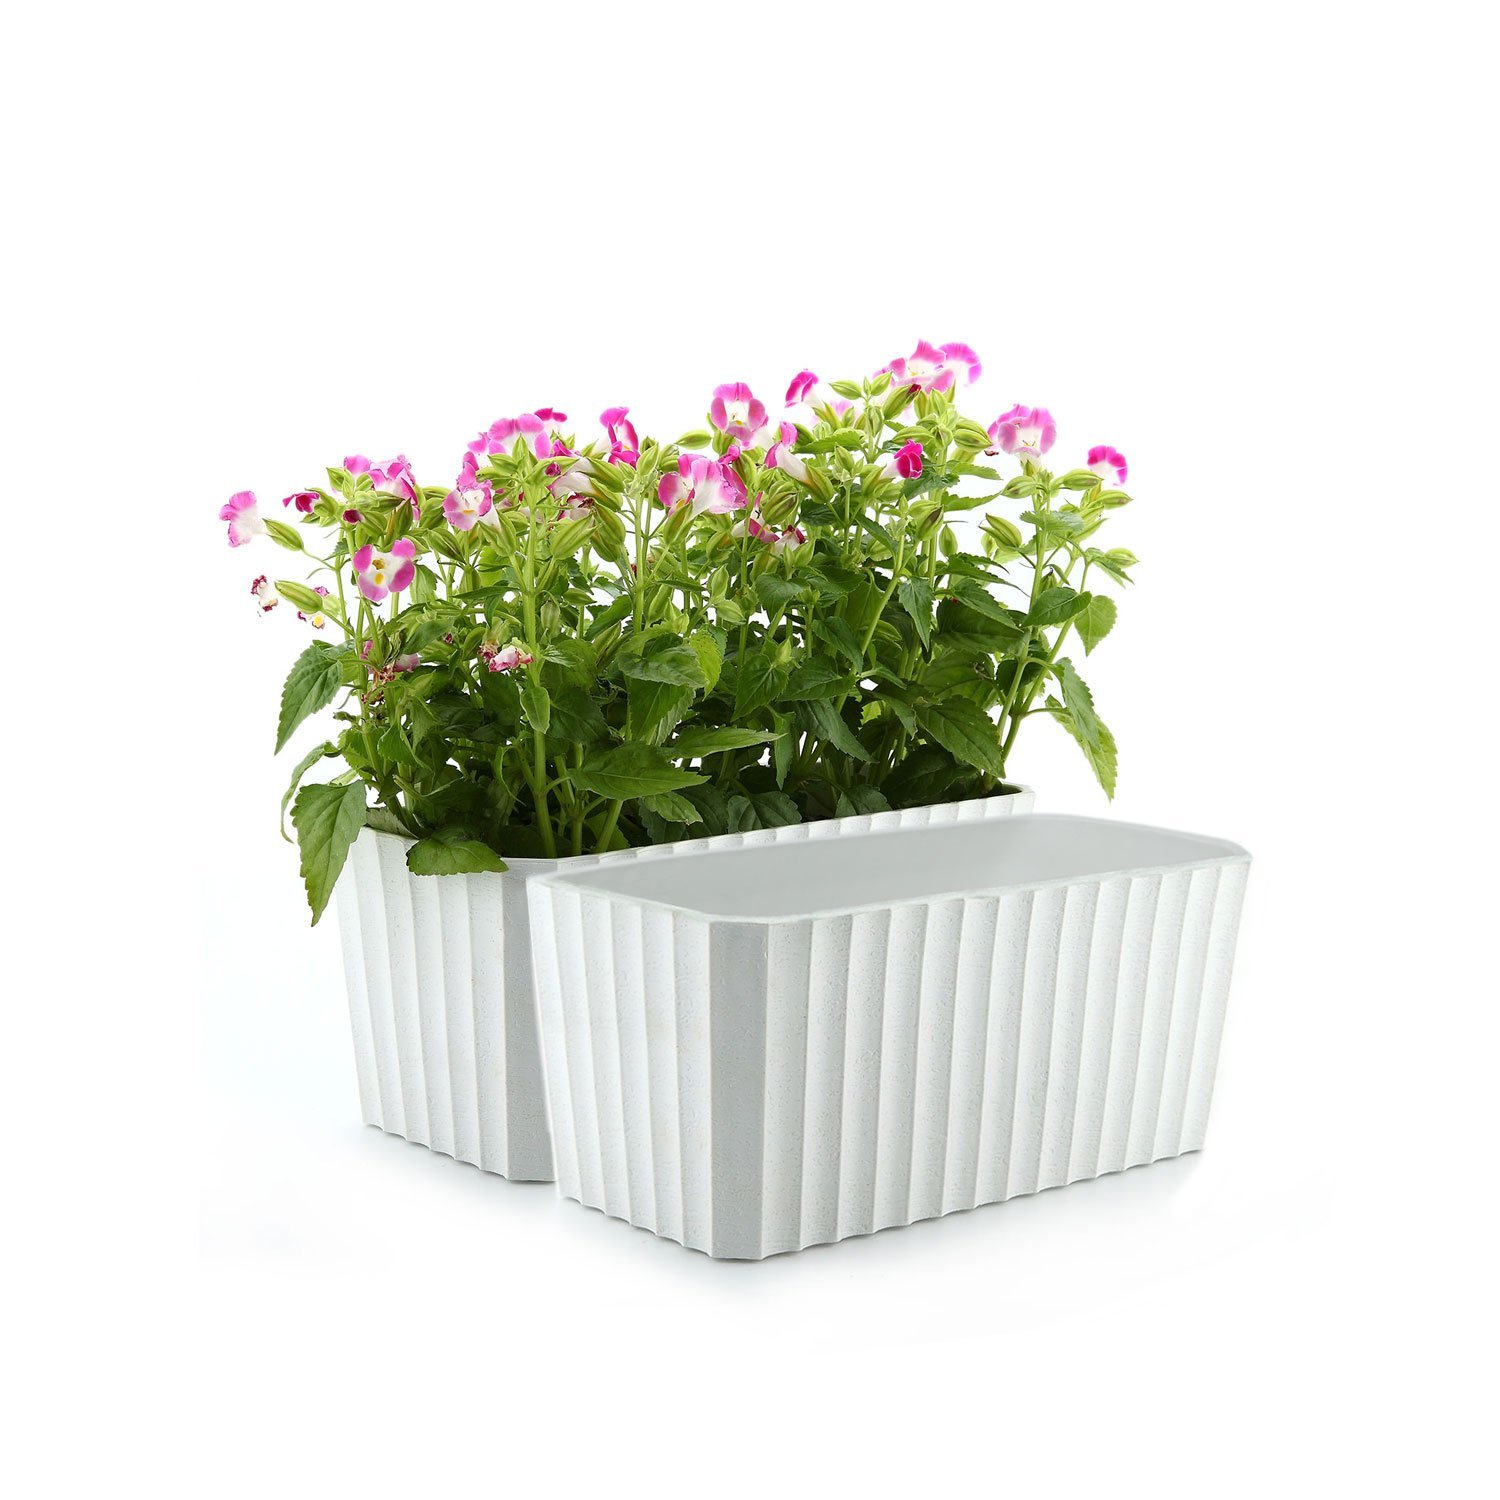 T4U Plastic Rectangular Self Watering Window Box with Water Level Indicator White Set of 2, Modern Decorative Planter Pot for All House Plants, Flowers, Herbs, African Violets, Succulents by T4U